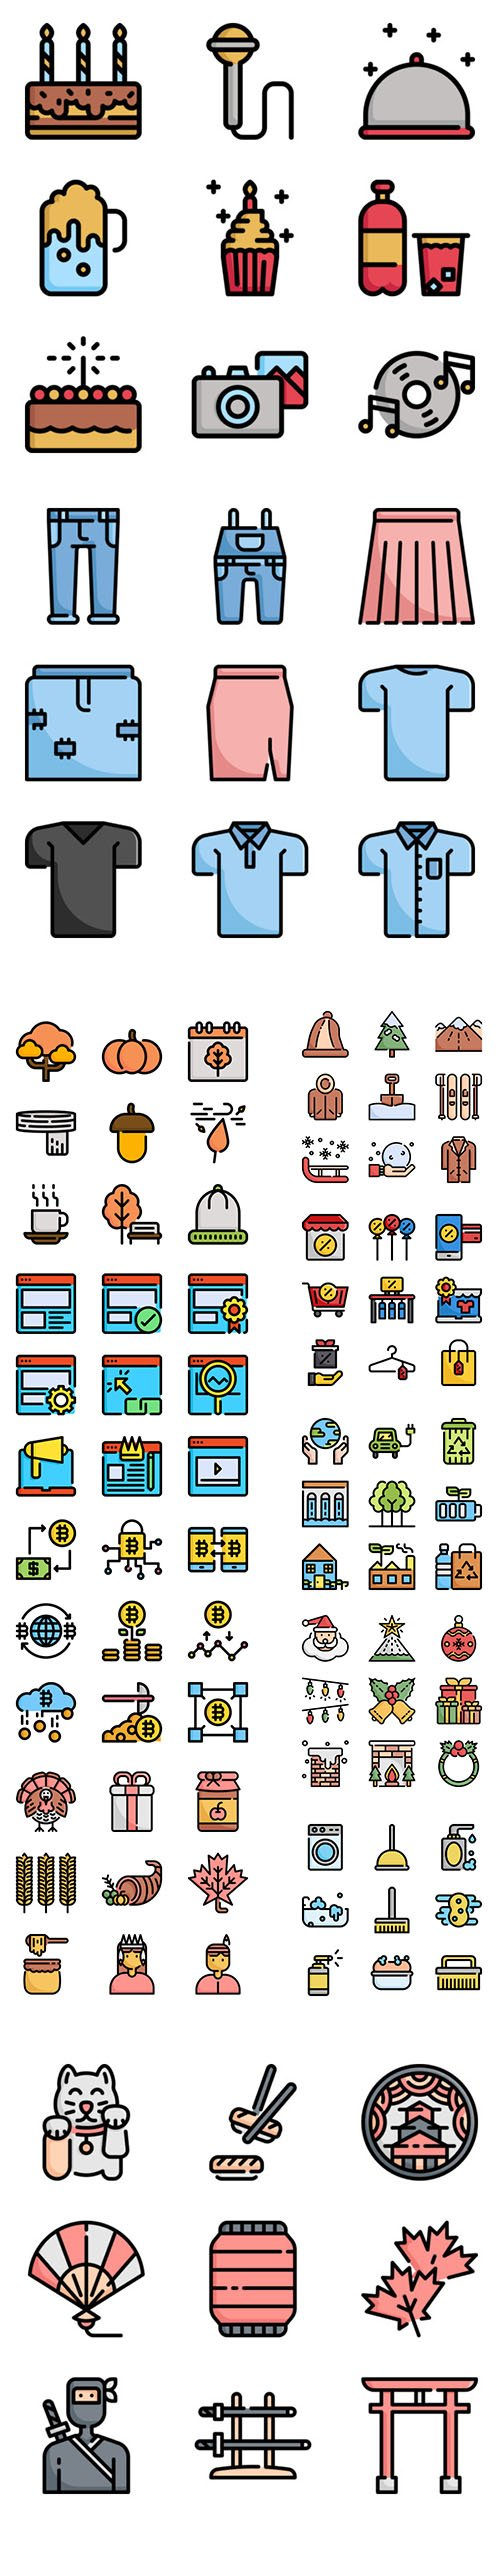 360 Icons In 1 Pack